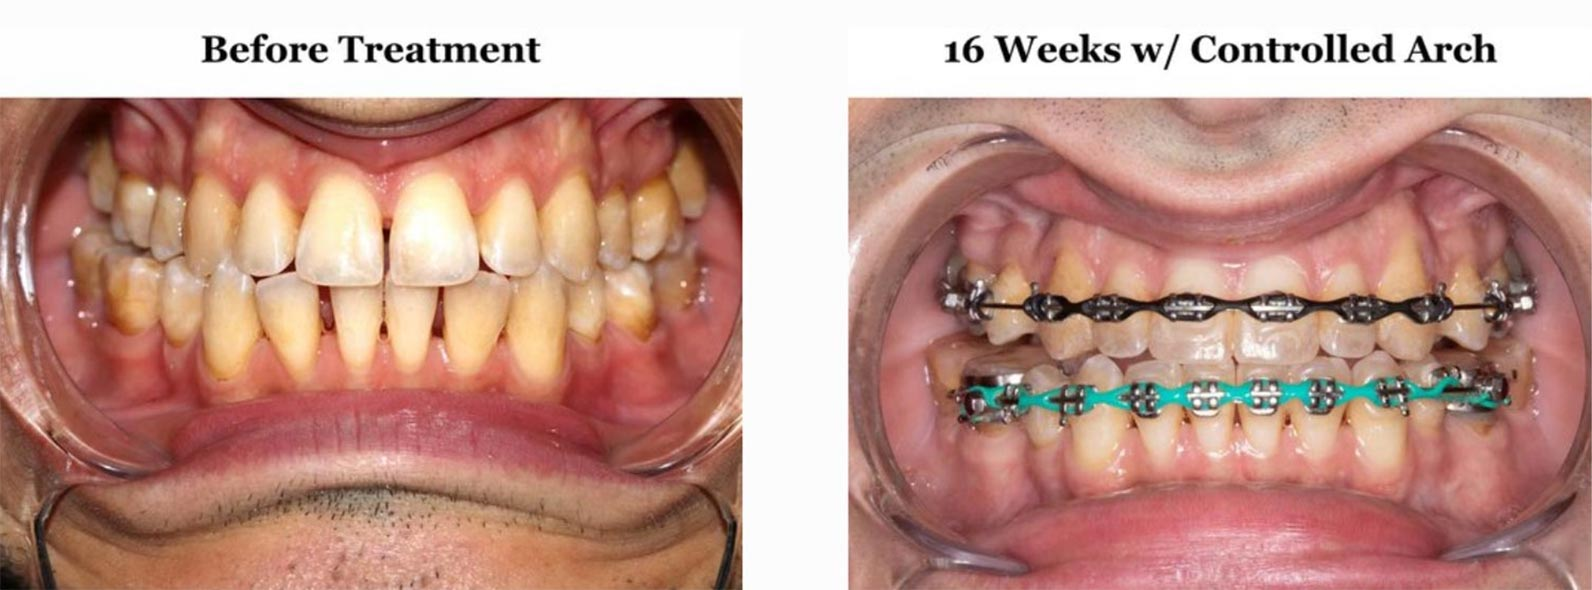 Even after 16 weeks of treatment, the Controlled Arch system seemed to have no effect on maxillary widening.